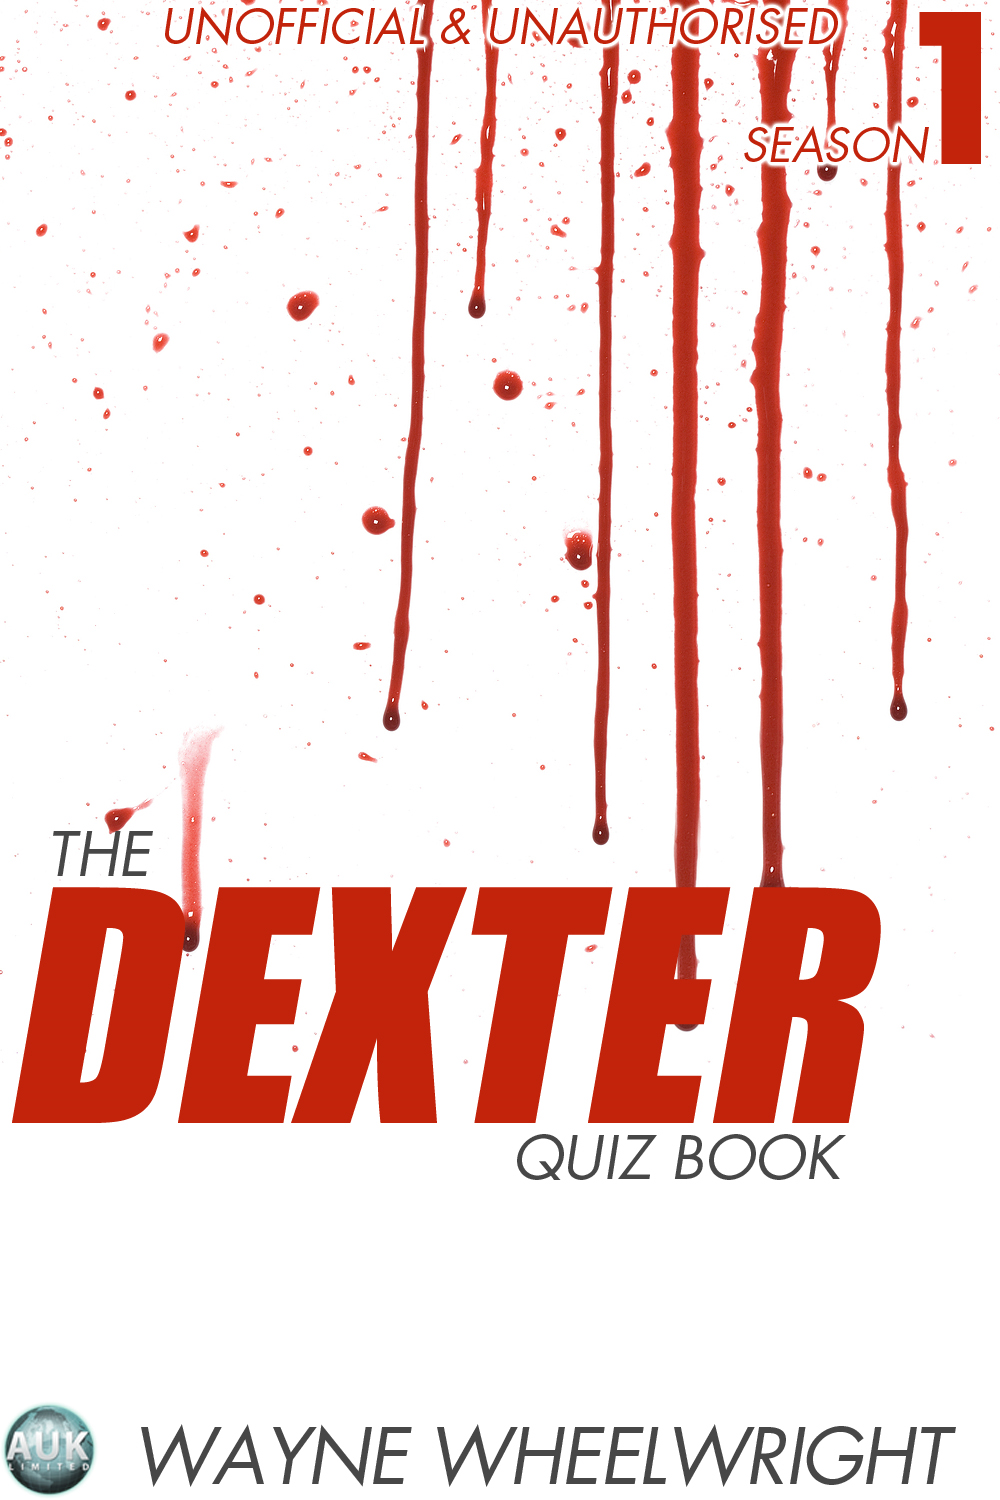 The Dexter Quiz Book Season 1